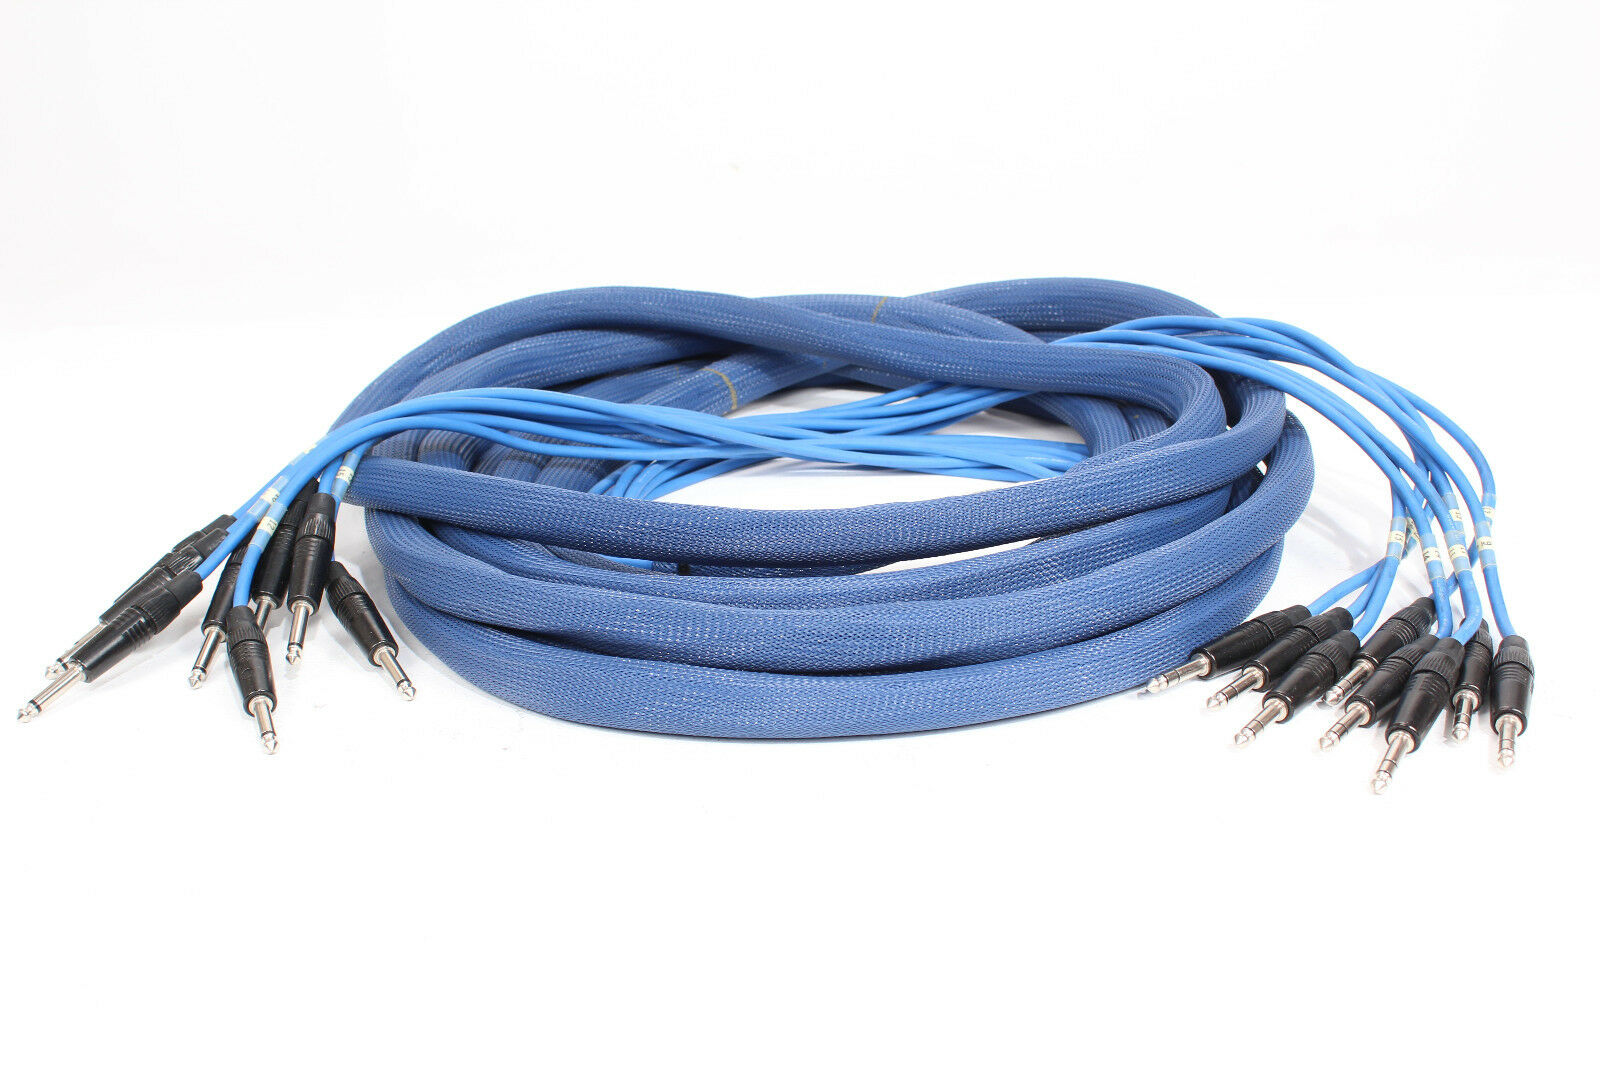 Canare L-2T2S 205 1 4 TRS -to- 1 4 TS 35ft. 8-Ch. Snake Cable